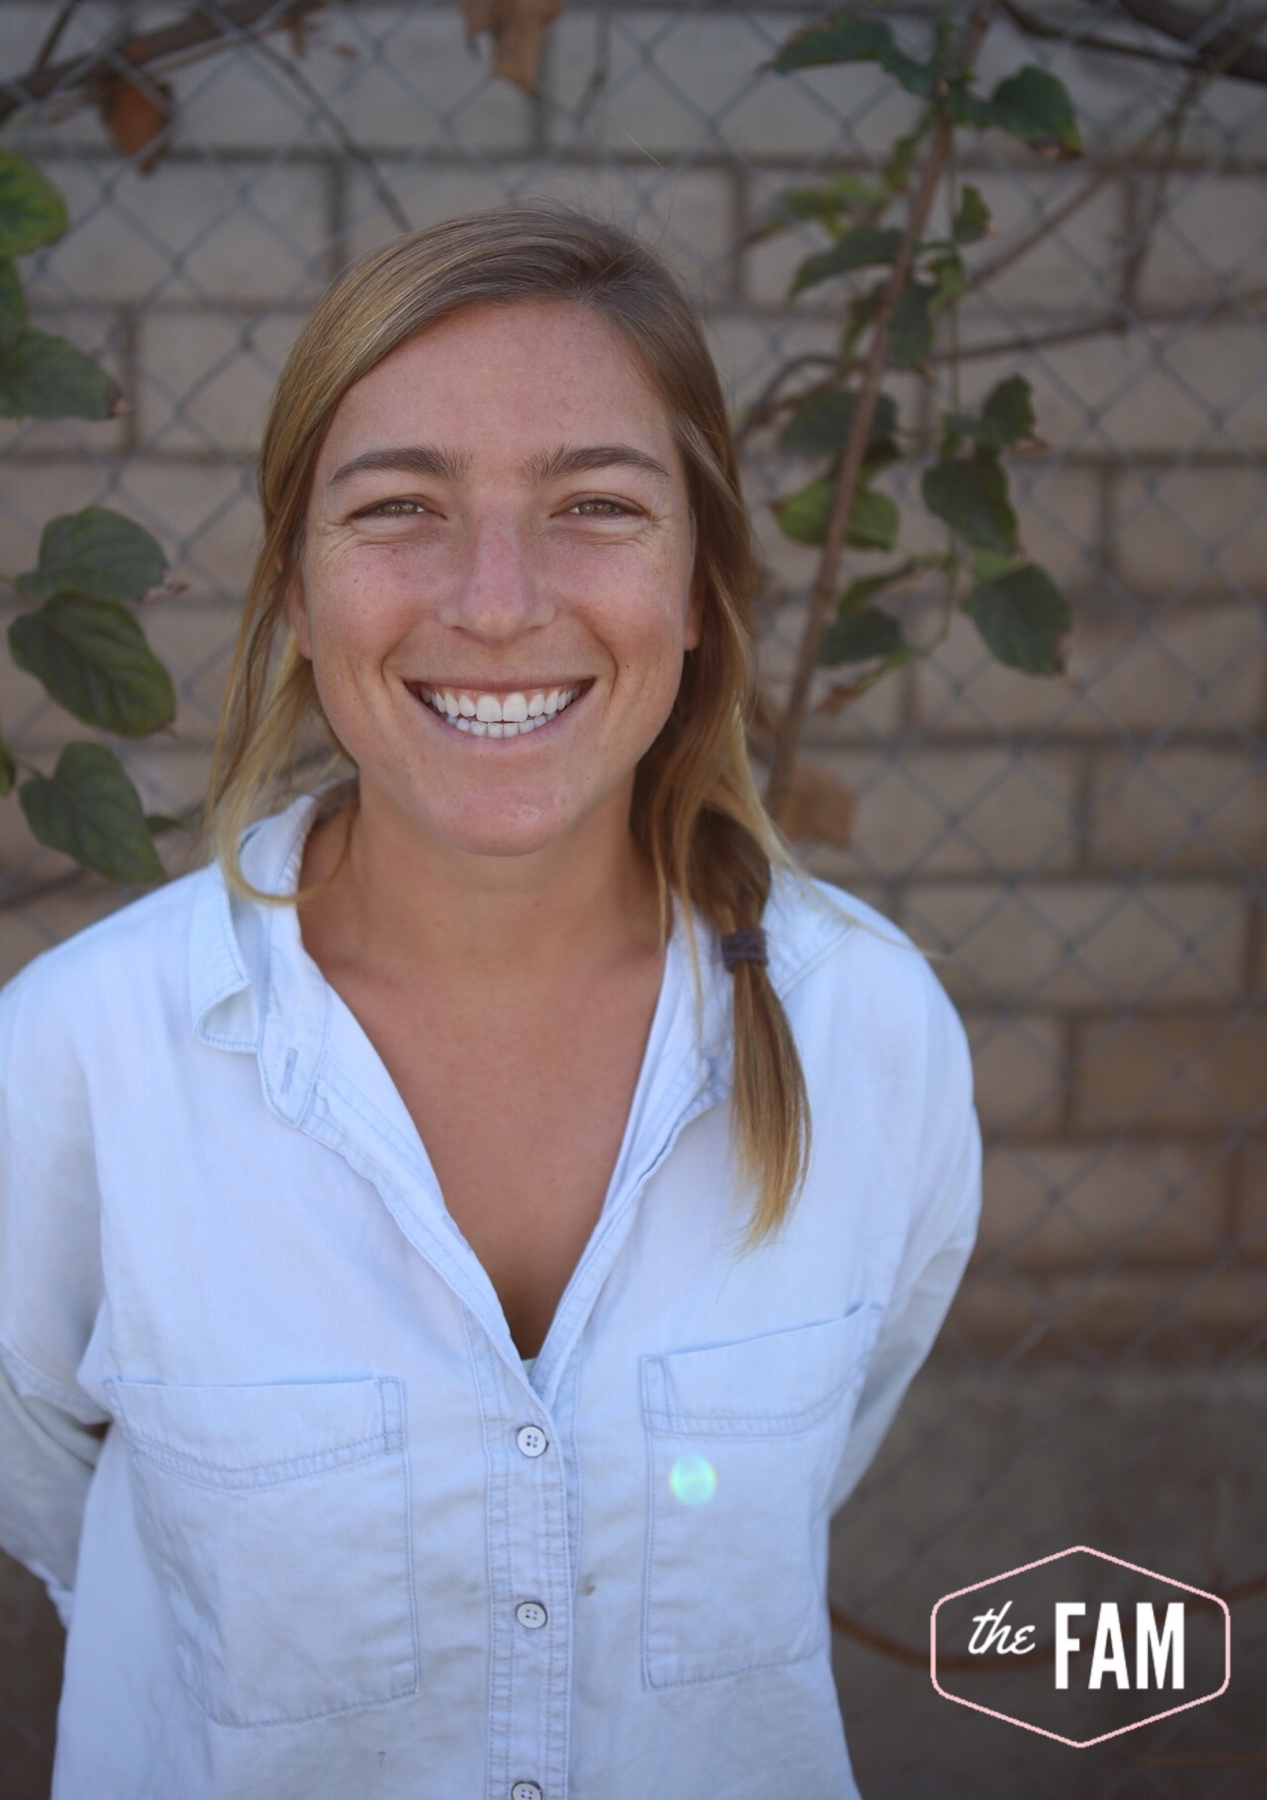 Natalie Lawrence - Hey FAM! I work for Fellowship of Christian Athletes where I specifically run a soccer ministry. I coach soccer all over Orange County and work with female athletes of all ages. I grew up in Southern California and played soccer at Point Loma Nazarene University where I studied exercise science and theology. My passion is to encourage others and bring them closer to Jesus! I also love all things my husband, Lakers, and the ocean!